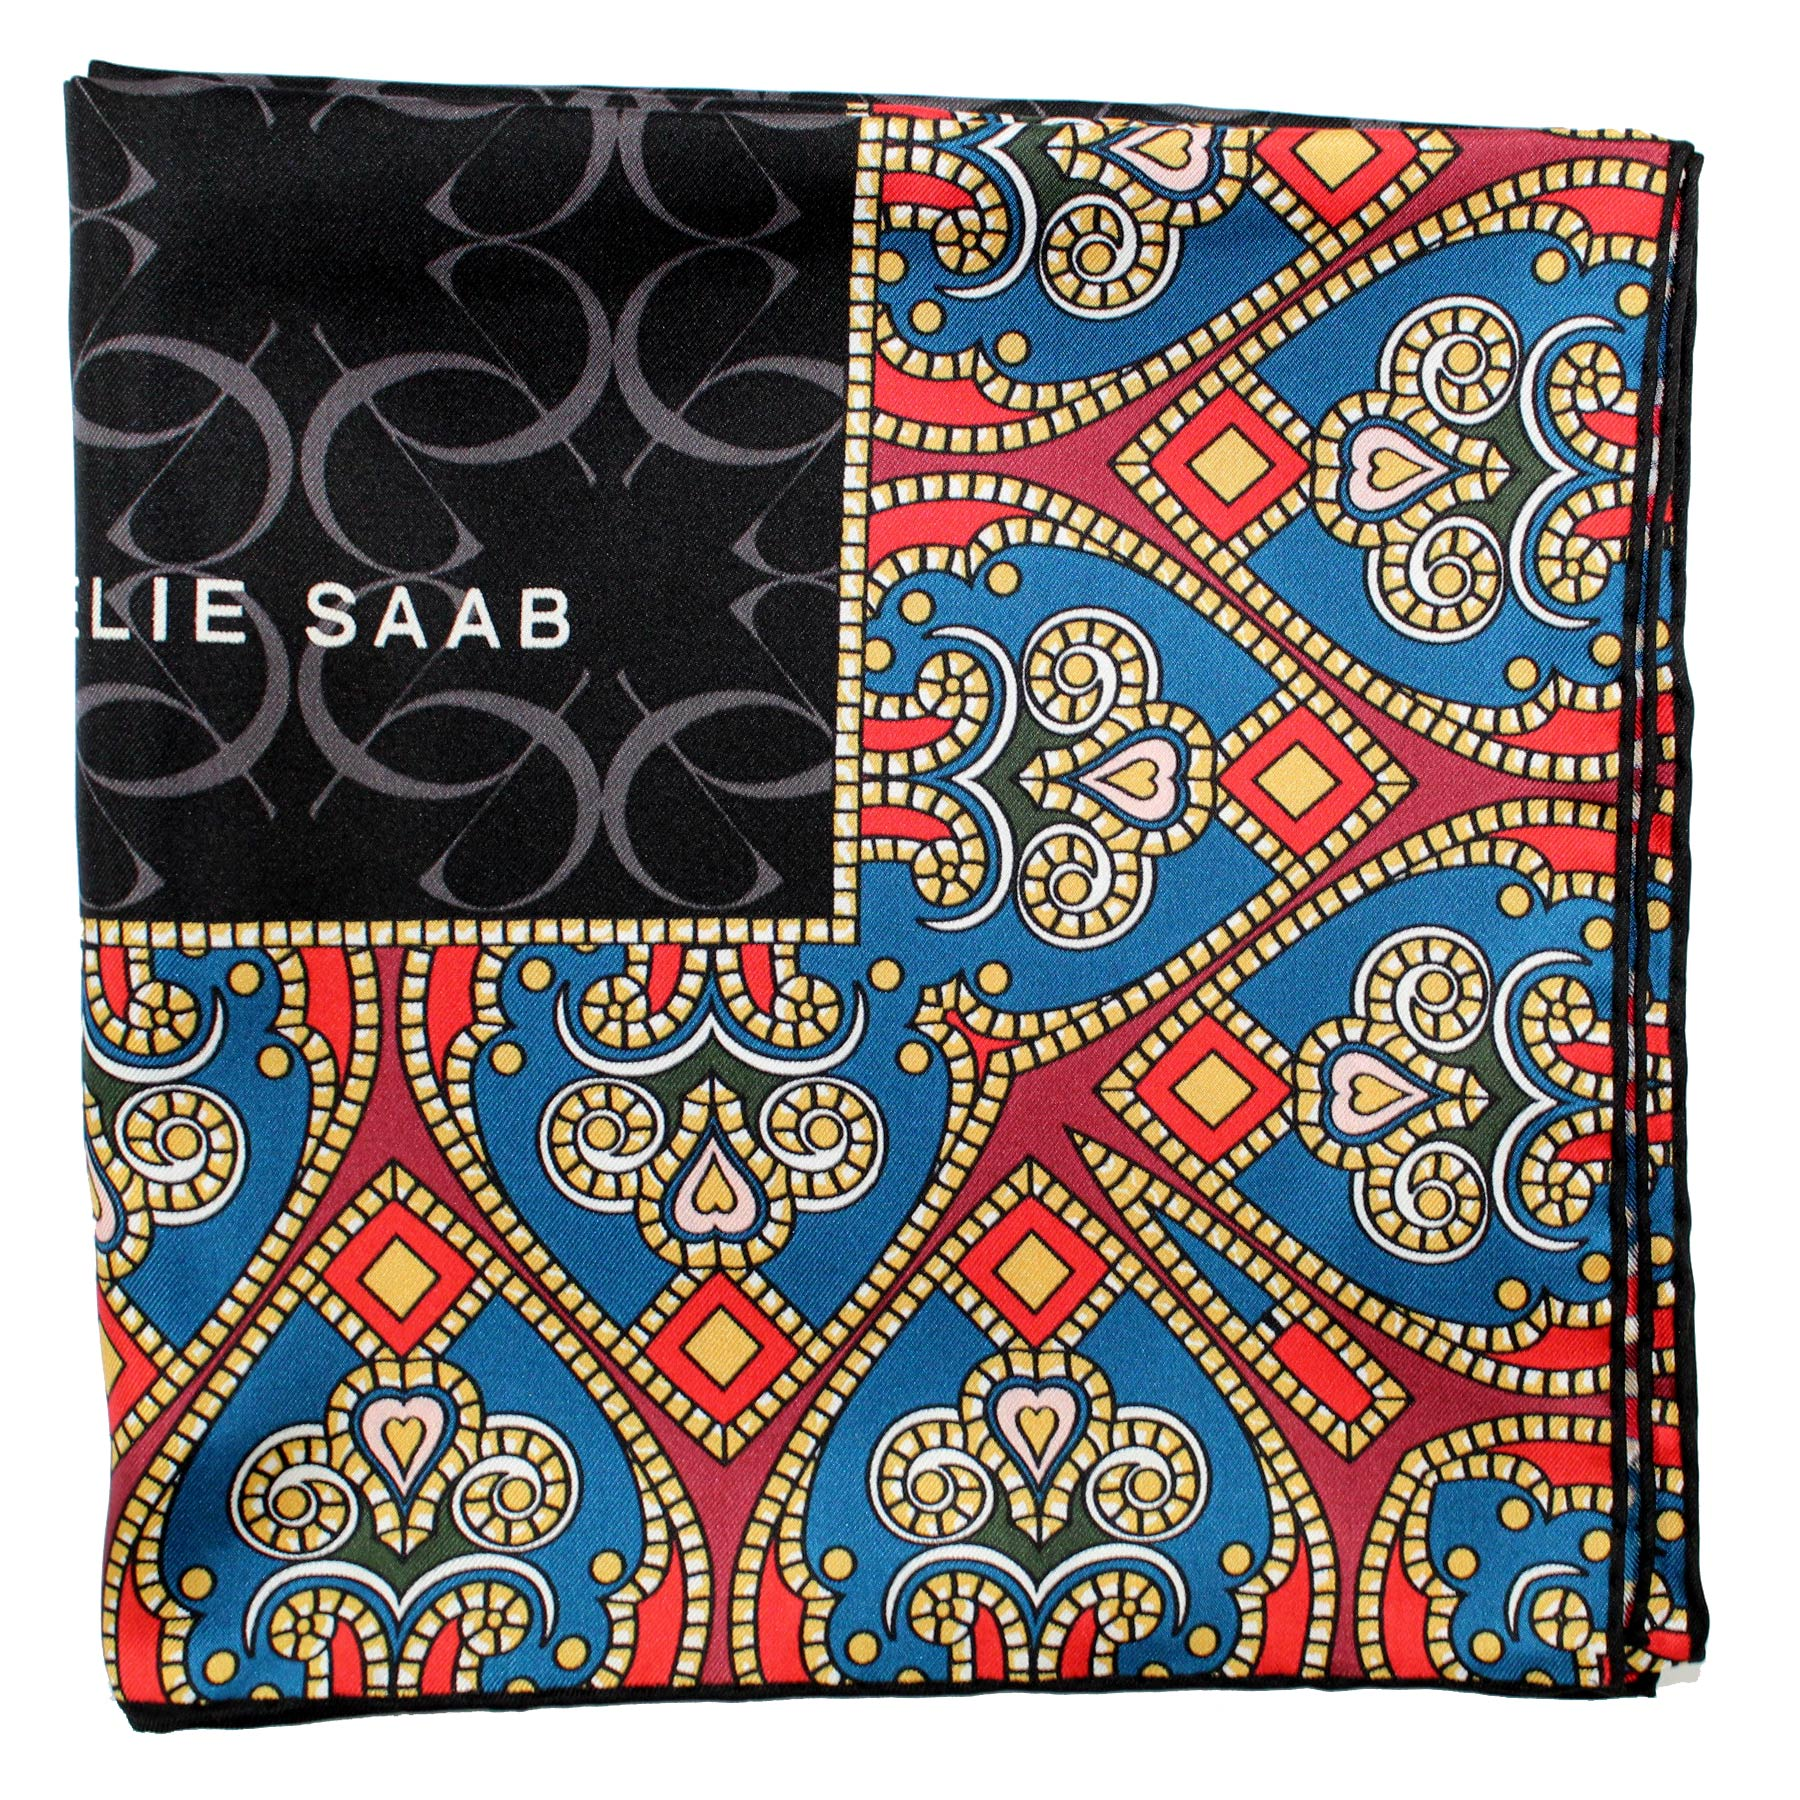 Elie Saab Scarf Black - Teal Maroon Gold Hearts Design - Large Twill Silk Square Scarf SALE